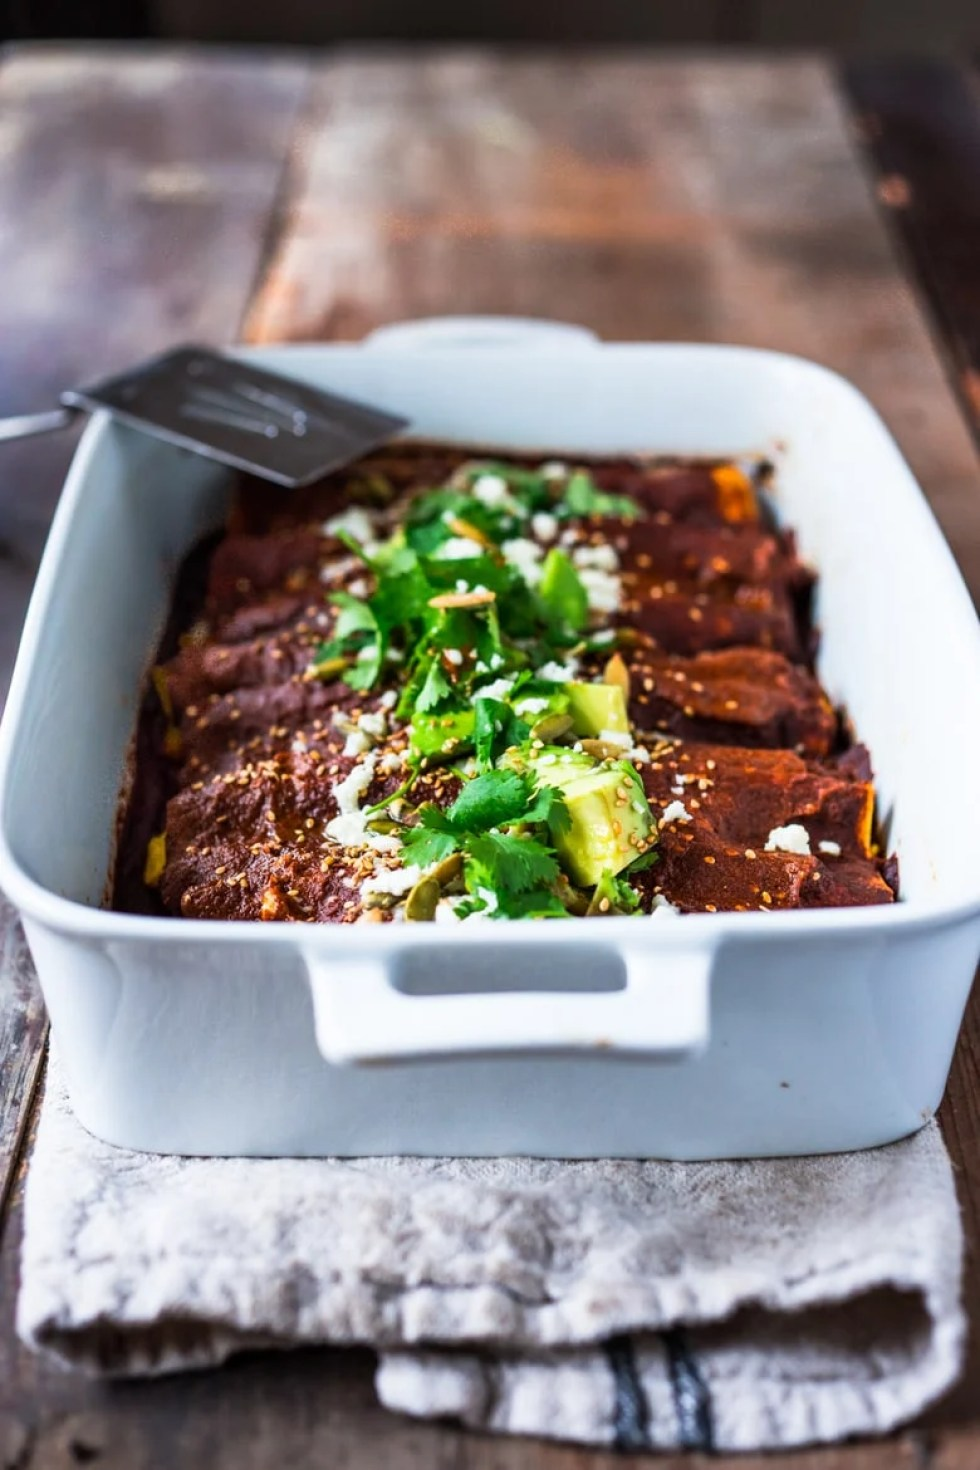 15 Cozy Fall Dinners that are MEATLESS!  Roasted Butternut Mole Enchiladas with Blackbeans - topped with cilantro, avocado and toasted sesame and pumpkin seeds. An easy delicious vegetarian main.   www.feastingathome.com